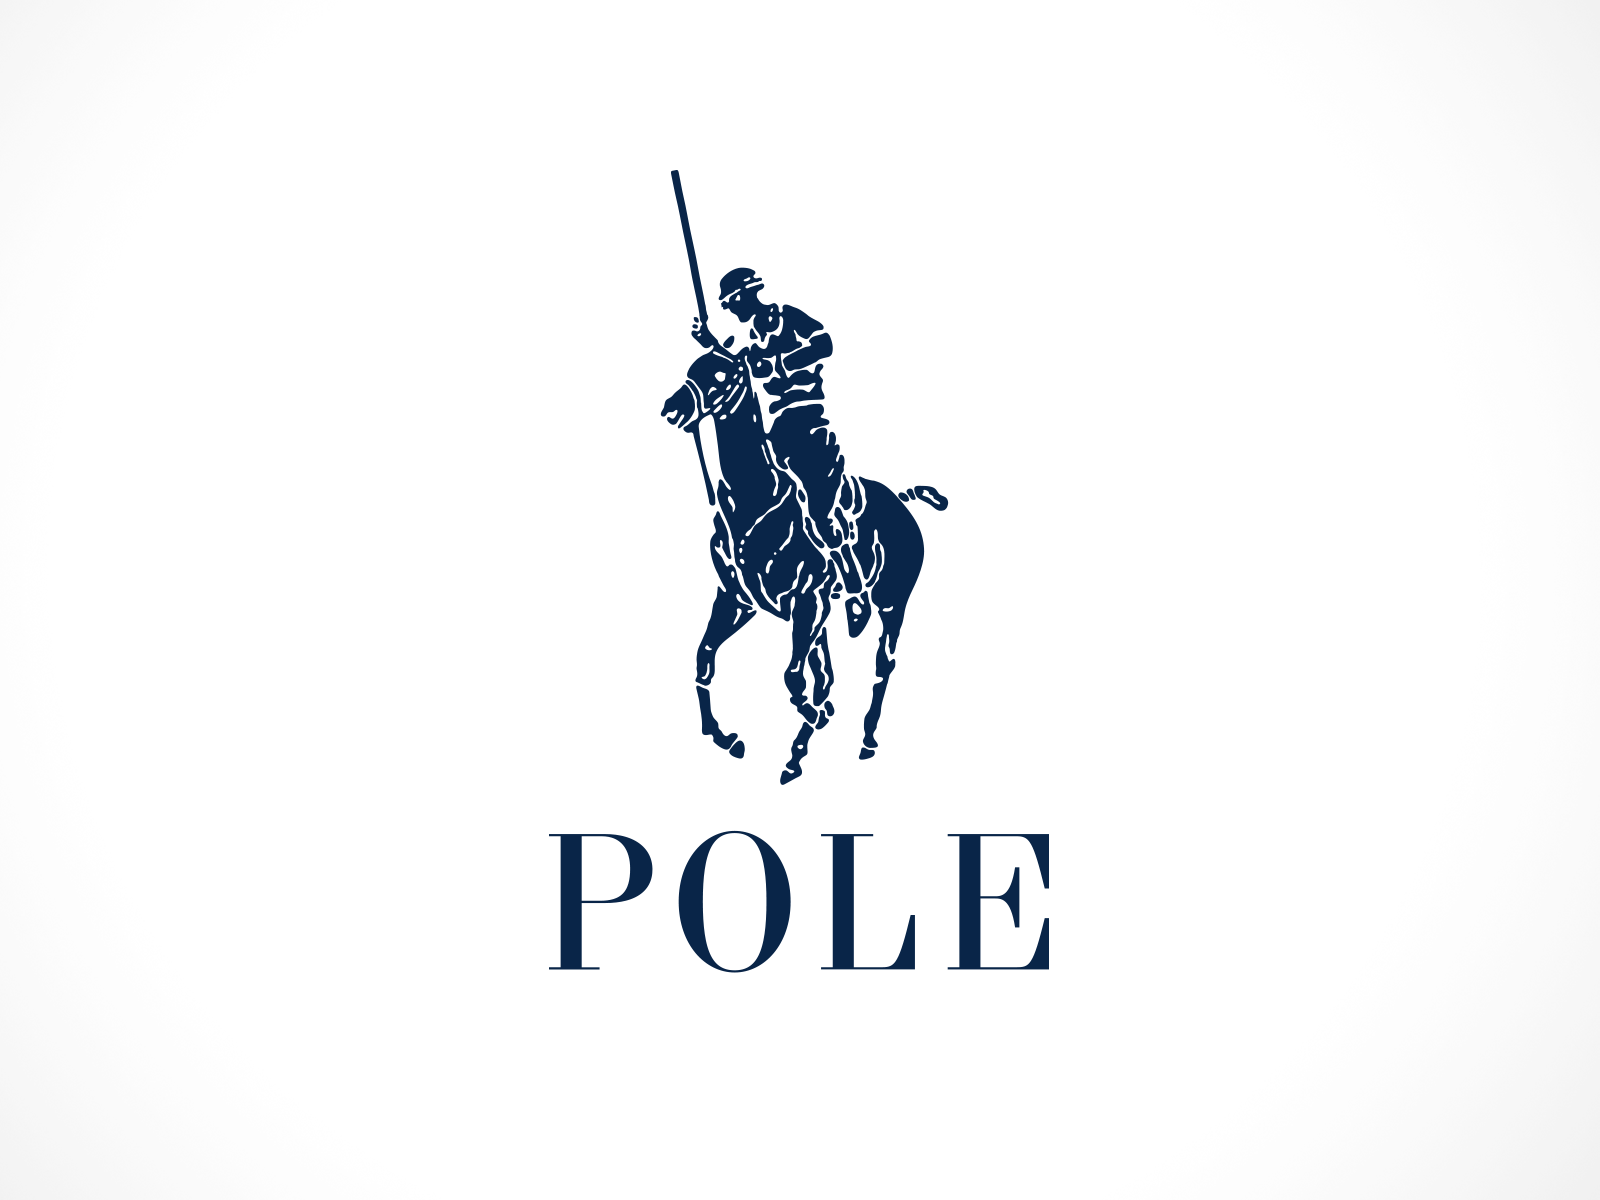 Polo pole dribbble